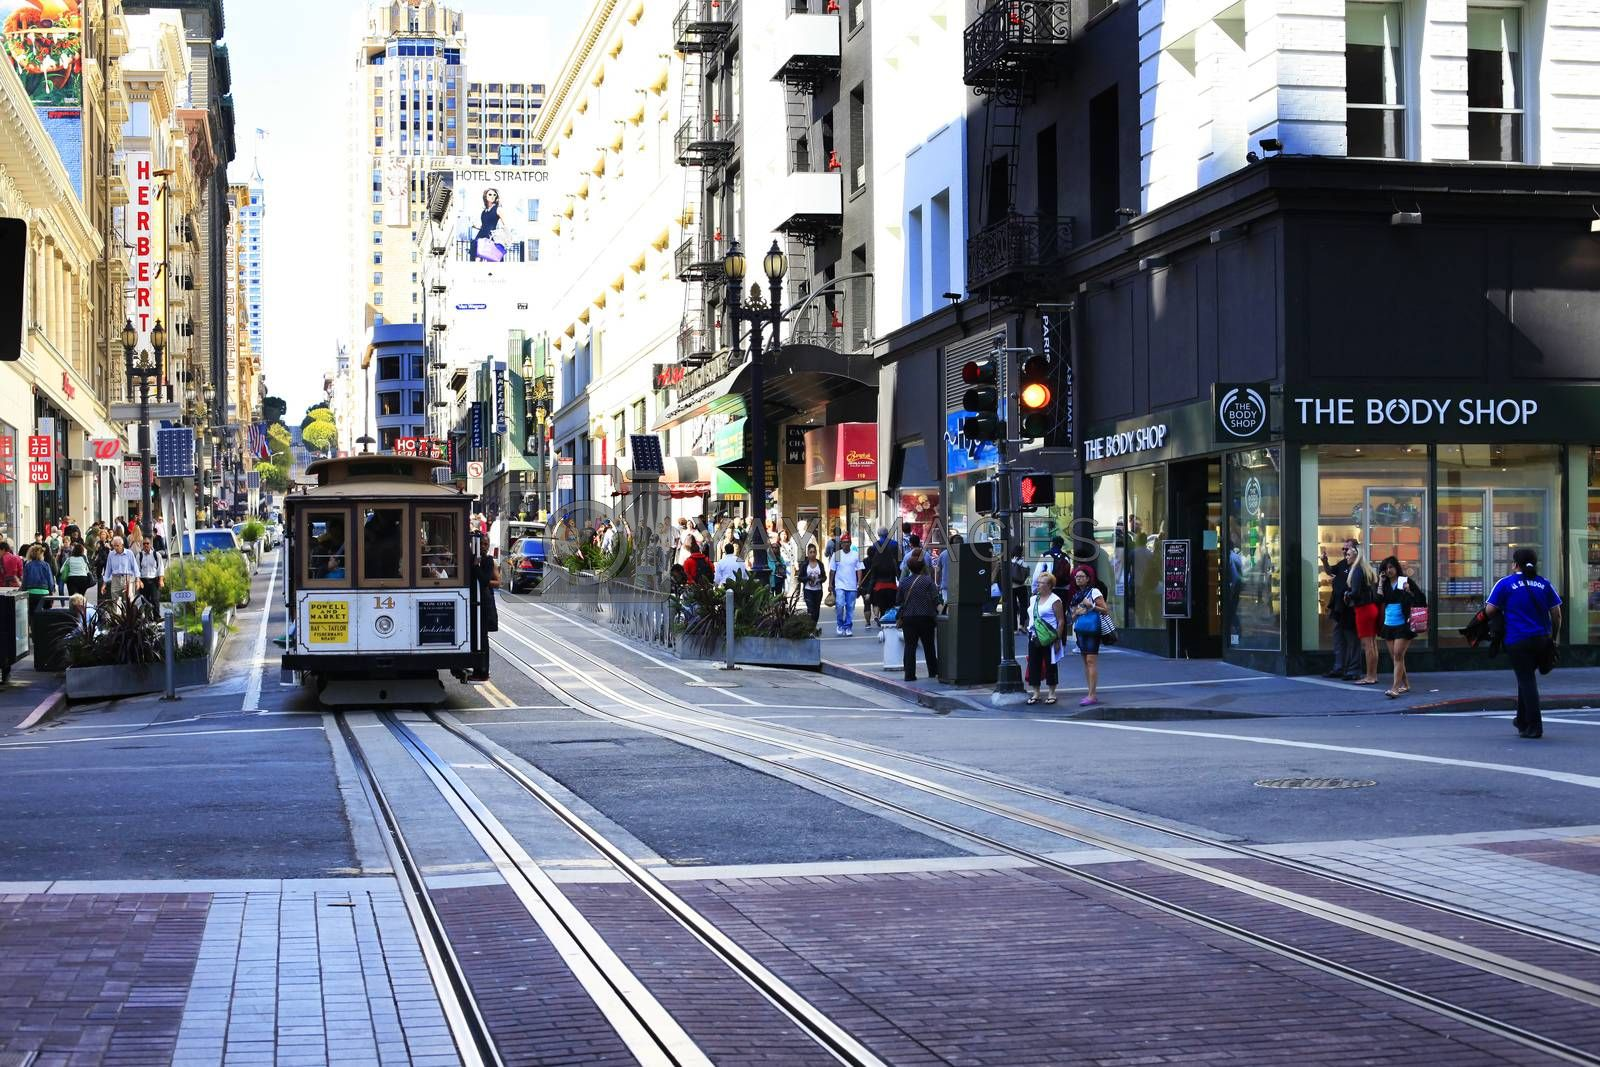 San Fransisco , CA, USA - September 28, 2013: Old tram - It is the most popular way to get around the city of San Fransisco which is in service since 1873.